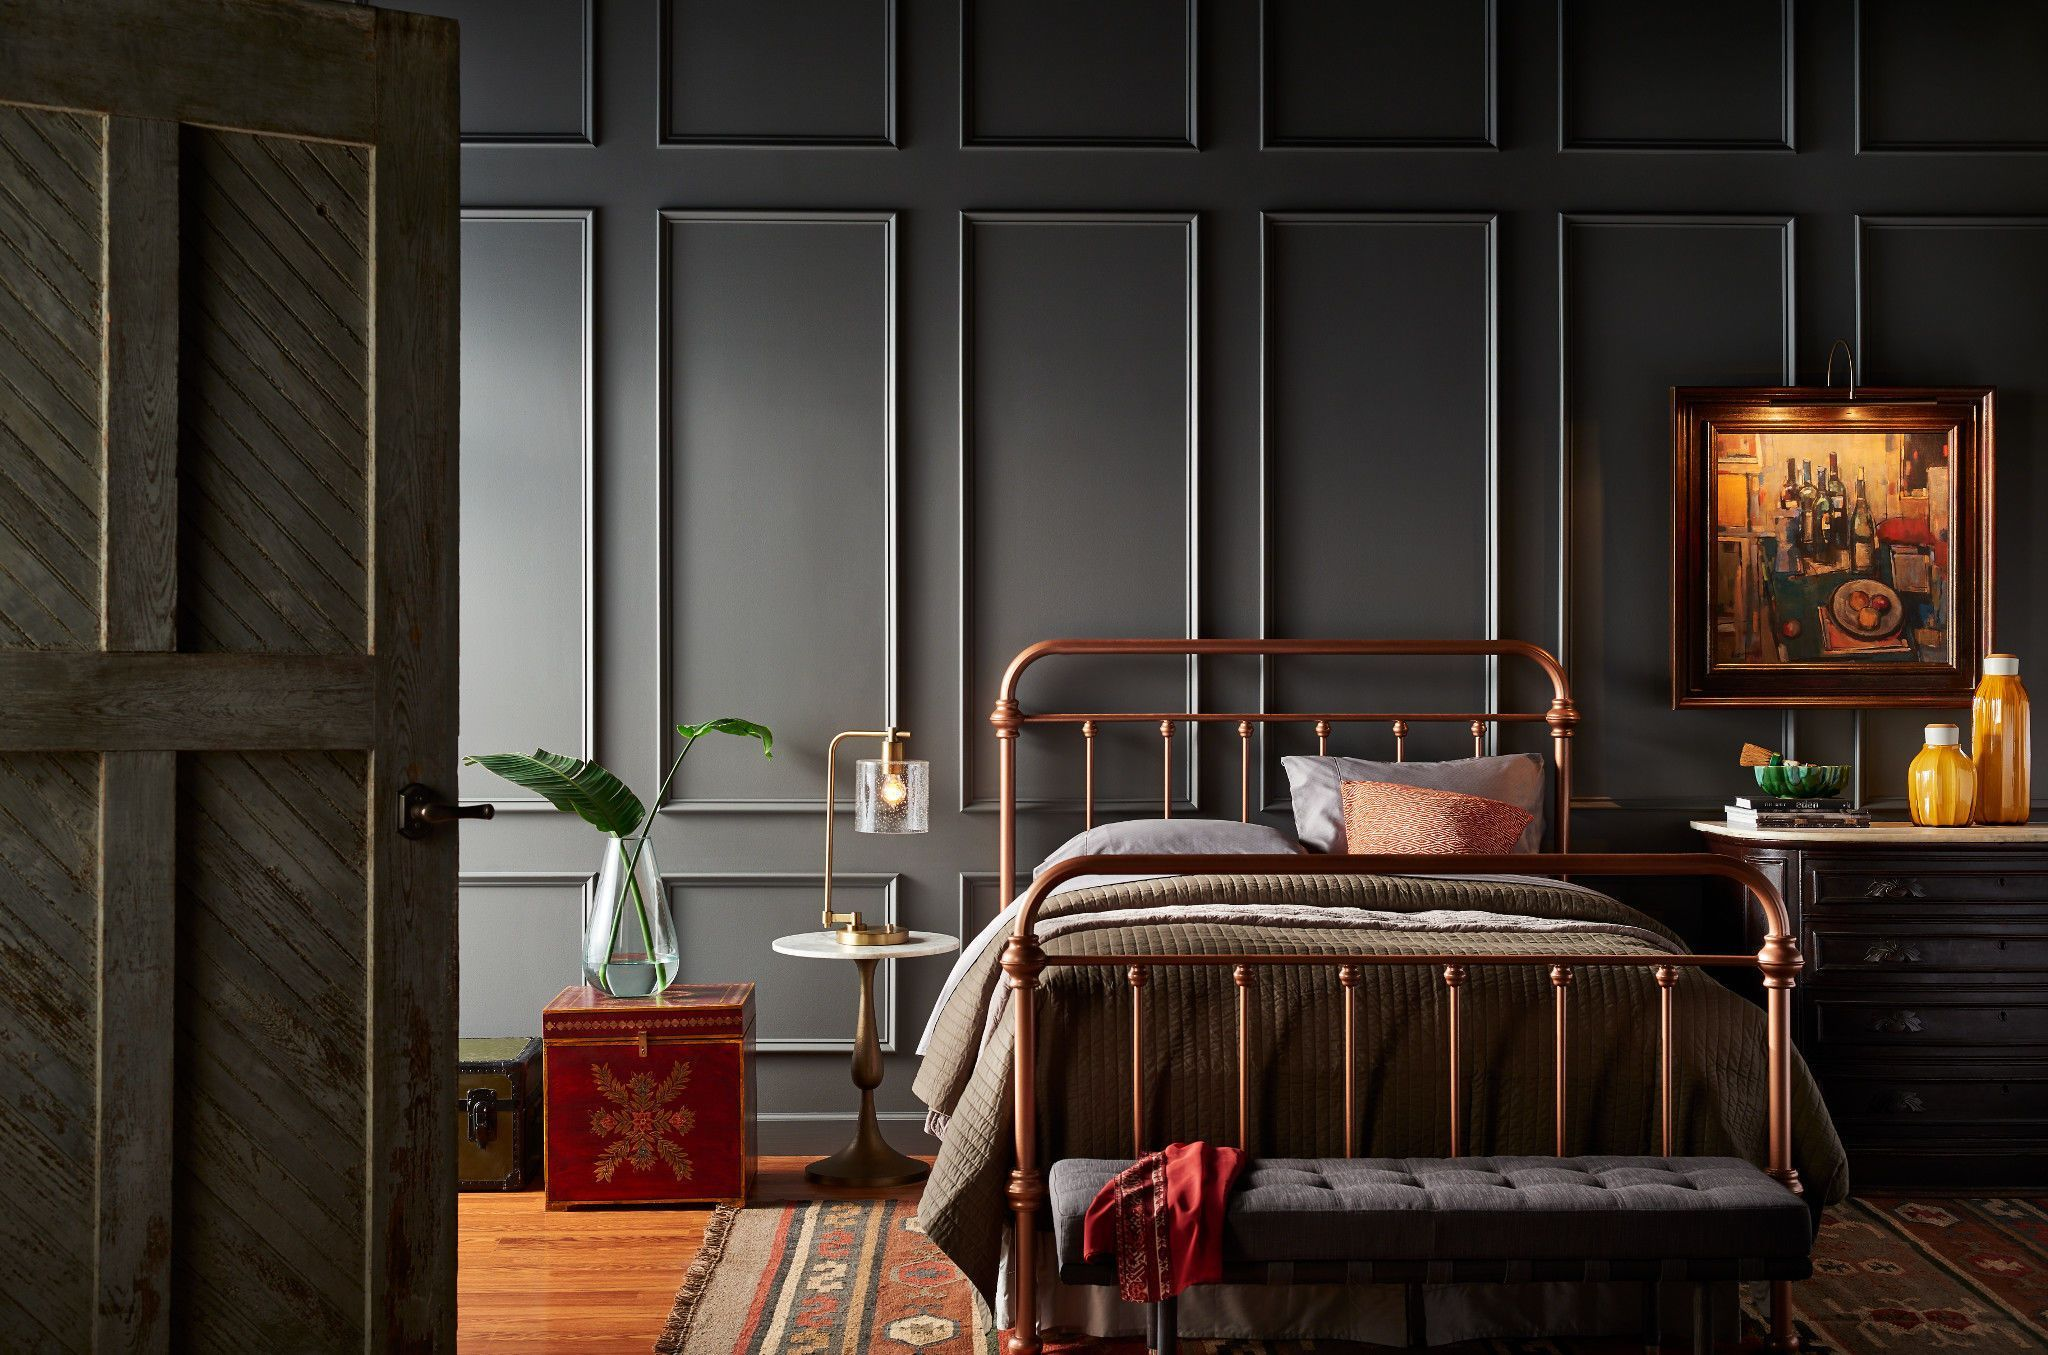 Next Years Interior Design Trends Are All About Your Personality